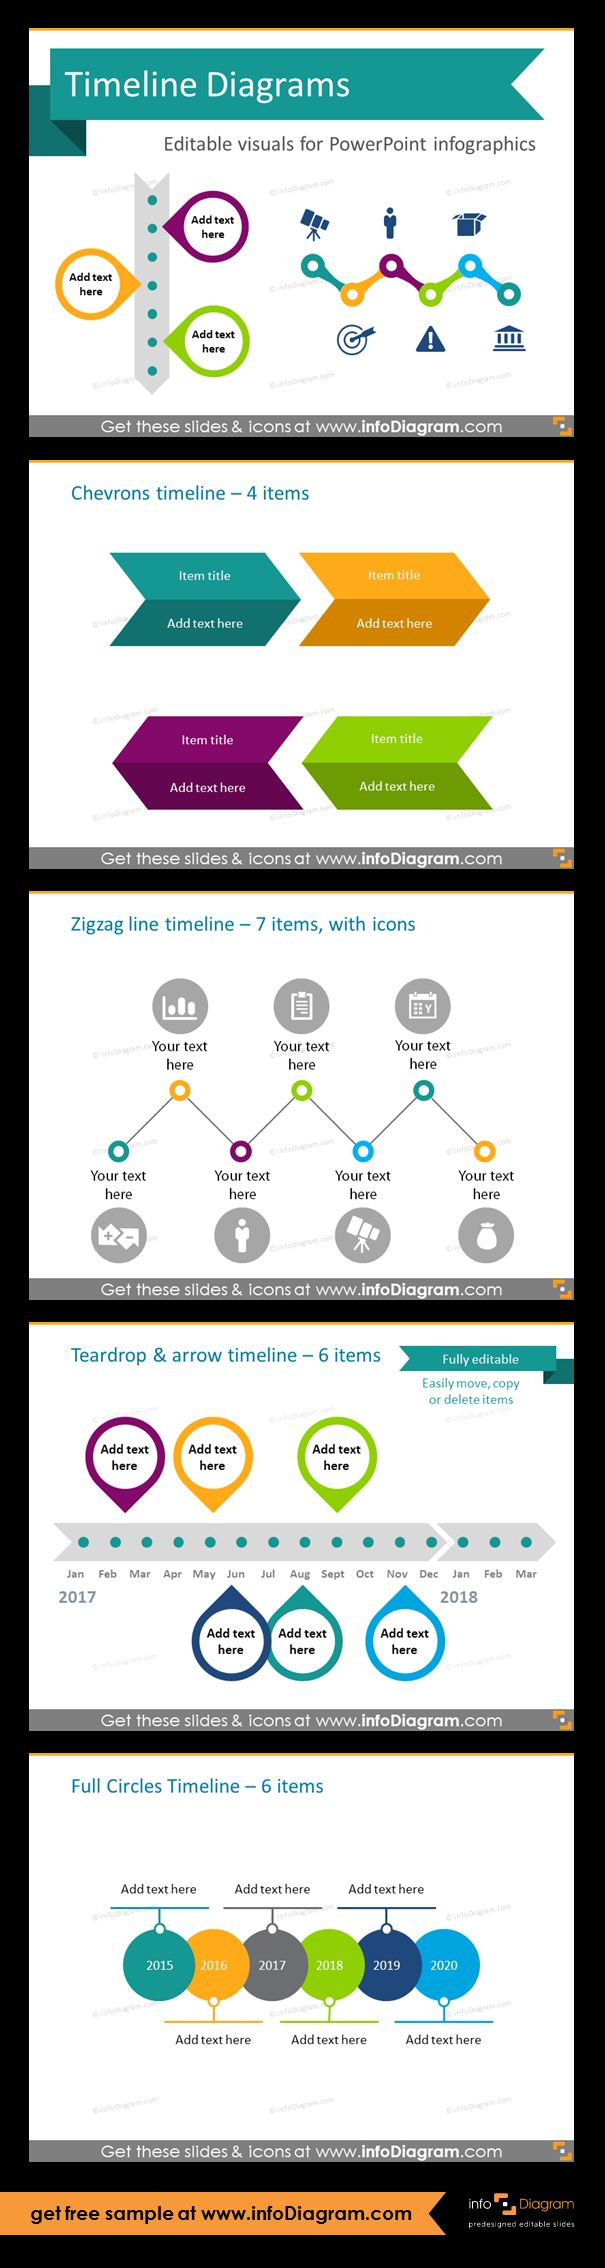 Template slides for Timeline diagrams and Time infographics. Editable PowerPoint graphics for showing history, agenda, linear process flow charts, project timelines, planning phases and roadmaps by modern infographics. Zigzag, teardrop and arrow, chevrons, full circles timelines. Use these timeline charts in various document: review reports in Word docs, project reviews and planning presentations or in Excel along calendar tables to show deadlines.